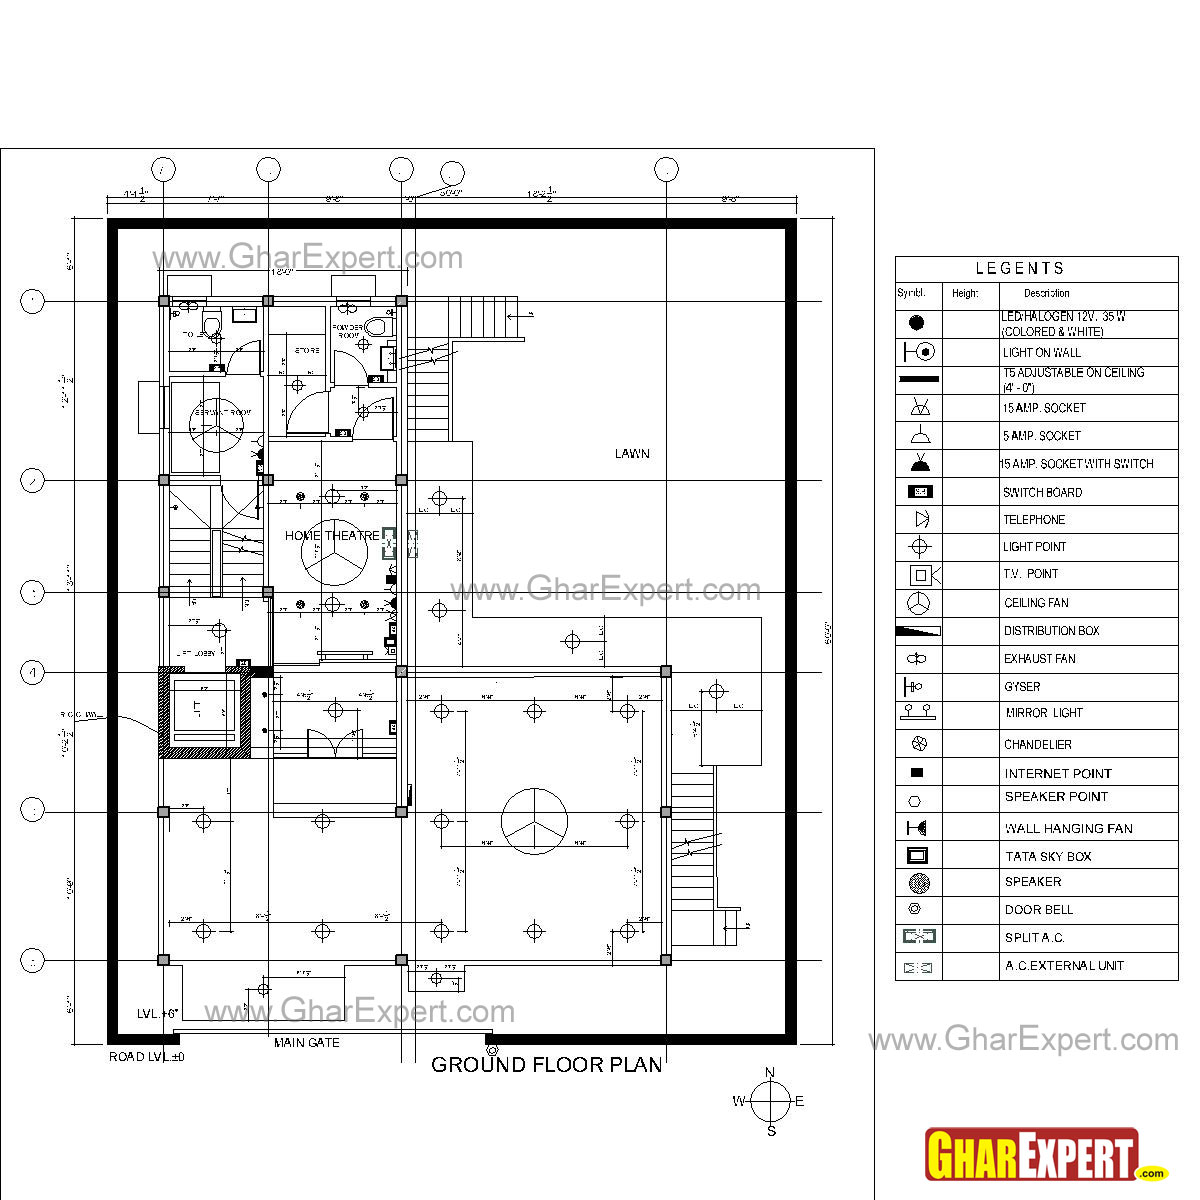 hight resolution of wiring diagram for two story house wiring diagram2 storey house electrical plan wiring diagram